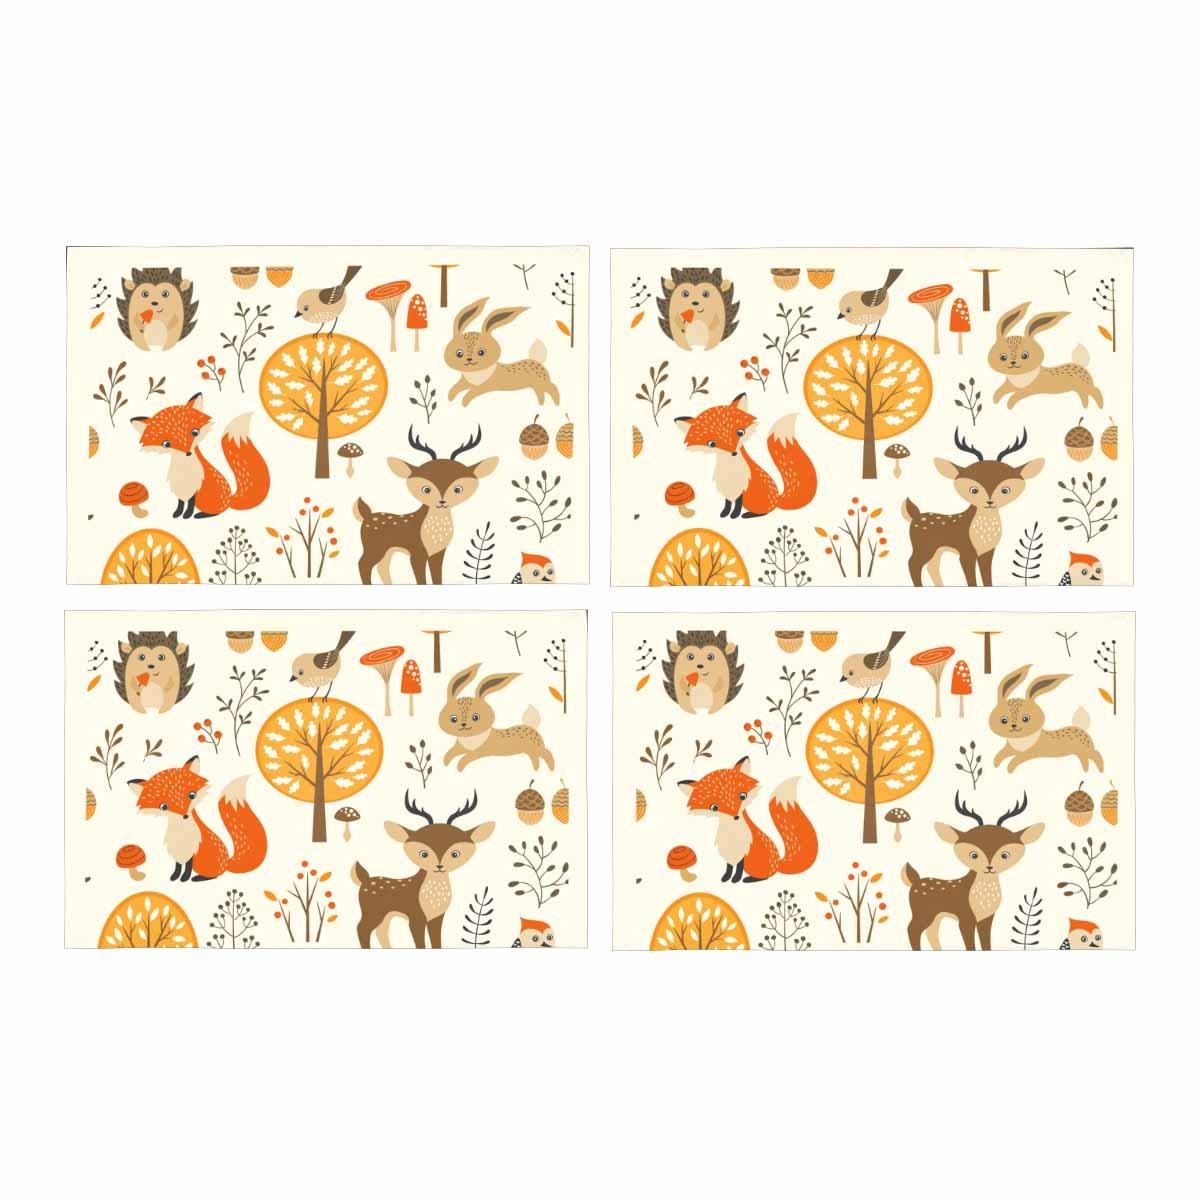 InterestPrint Autumn Forest Harvest with Cute Animals Placemat Place Mat Set of 4, Fall Tree Fox Deer Table Place Mats for Kitchen Dining Table Restaurant Home Decor 12''x18''